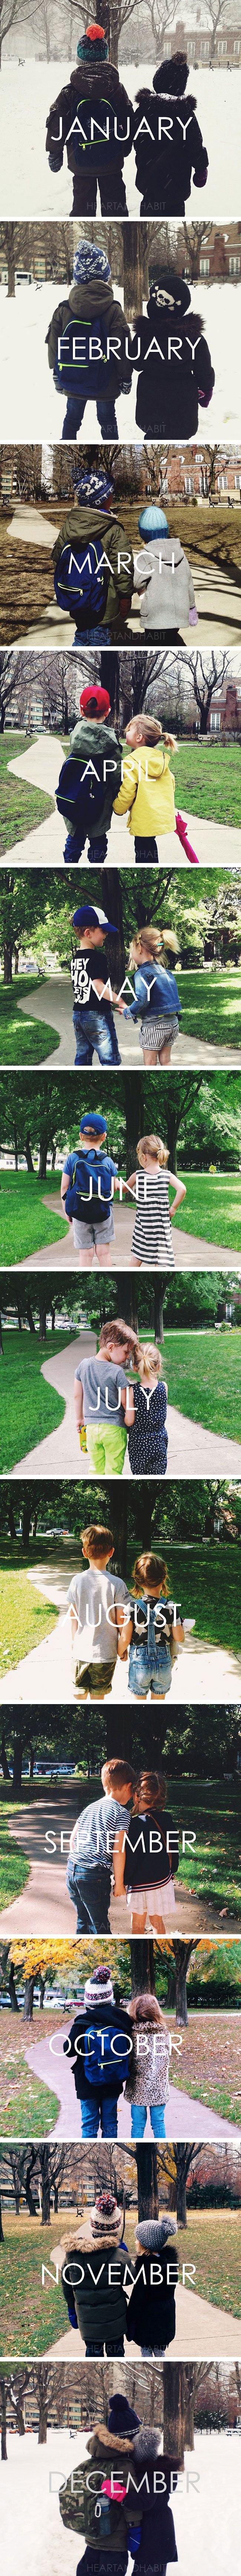 Take a picture in the same spot every month and then make a calendar out of it.